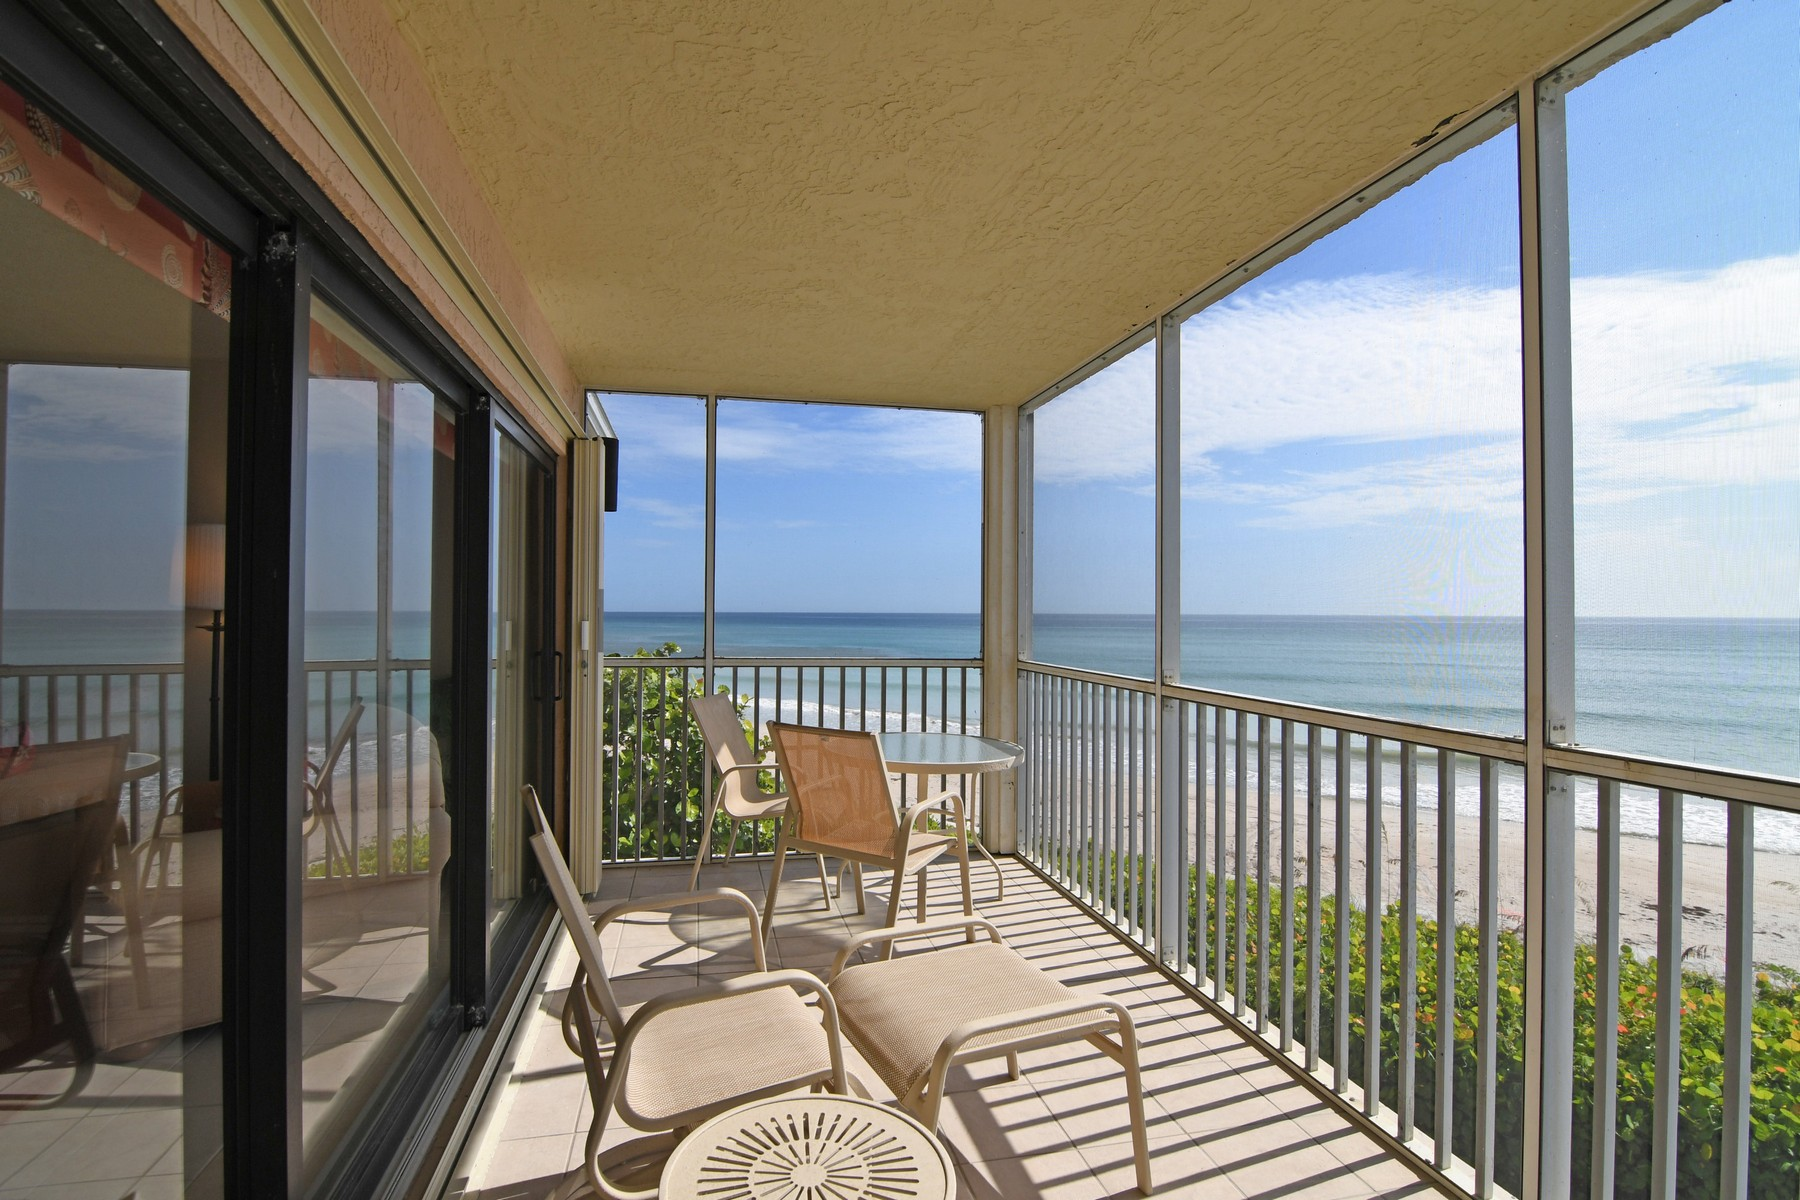 Condominium for Sale at Sea Oaks Oceanfront Condo 8840 S Sea Oaks Way #206 Vero Beach, Florida 32963 United States